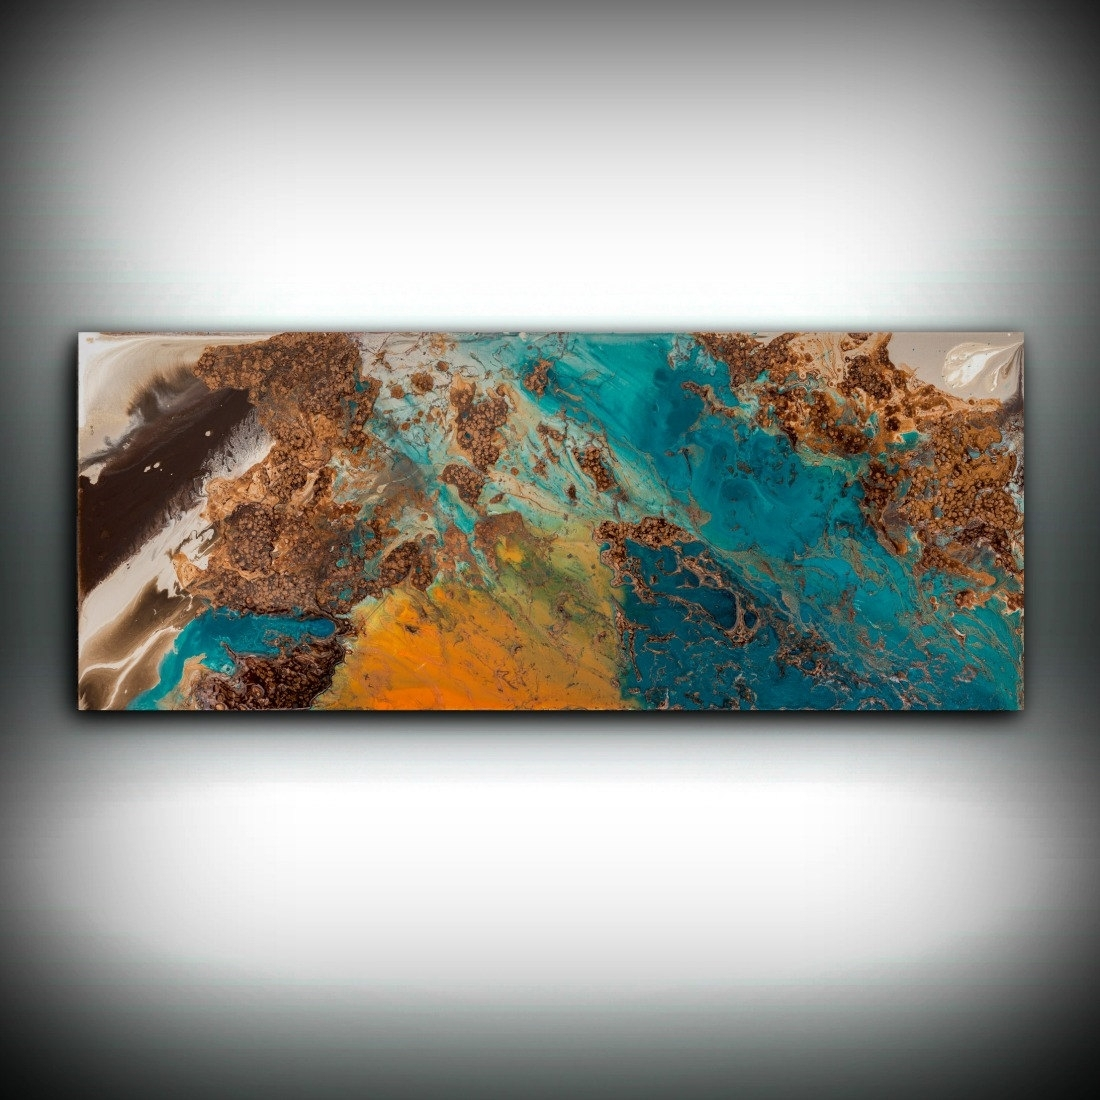 Sale Blue And Copper Art, Wall Art Prints Fine Art Prints Abstract Regarding Most Current Framed Fine Art Prints (Gallery 10 of 15)